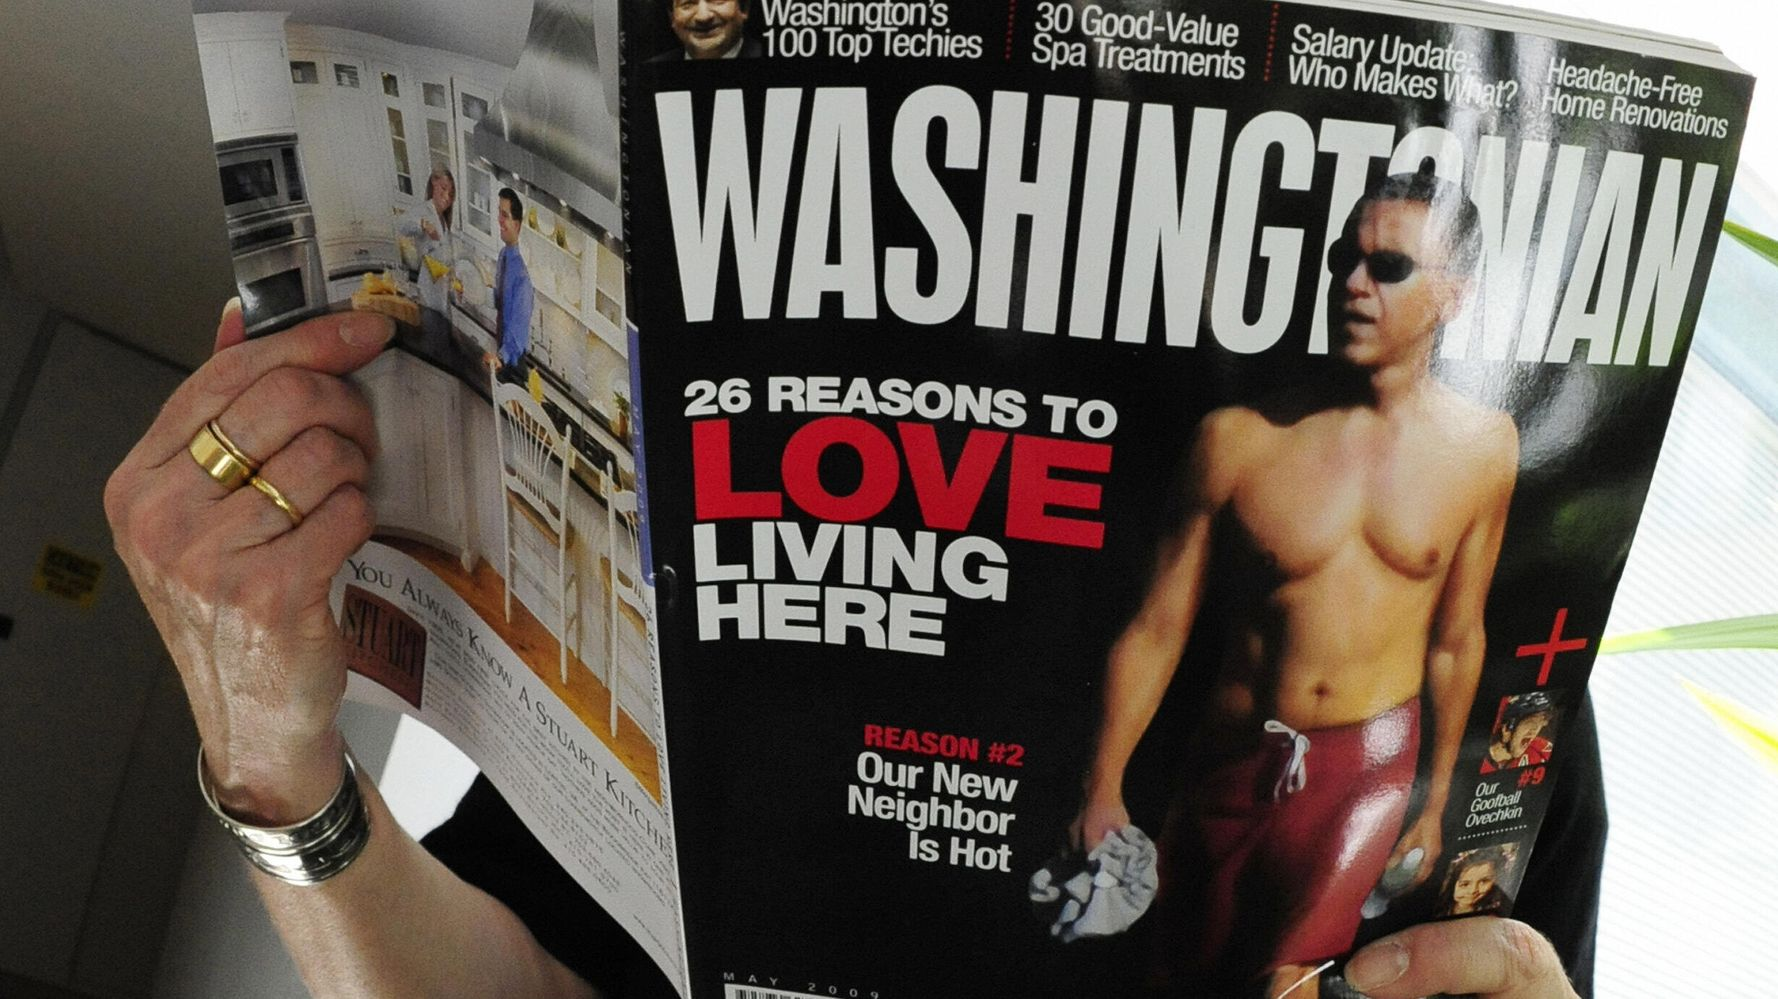 Washingtonian CEO's Ominous Op-Ed Leads To Staff Revolt